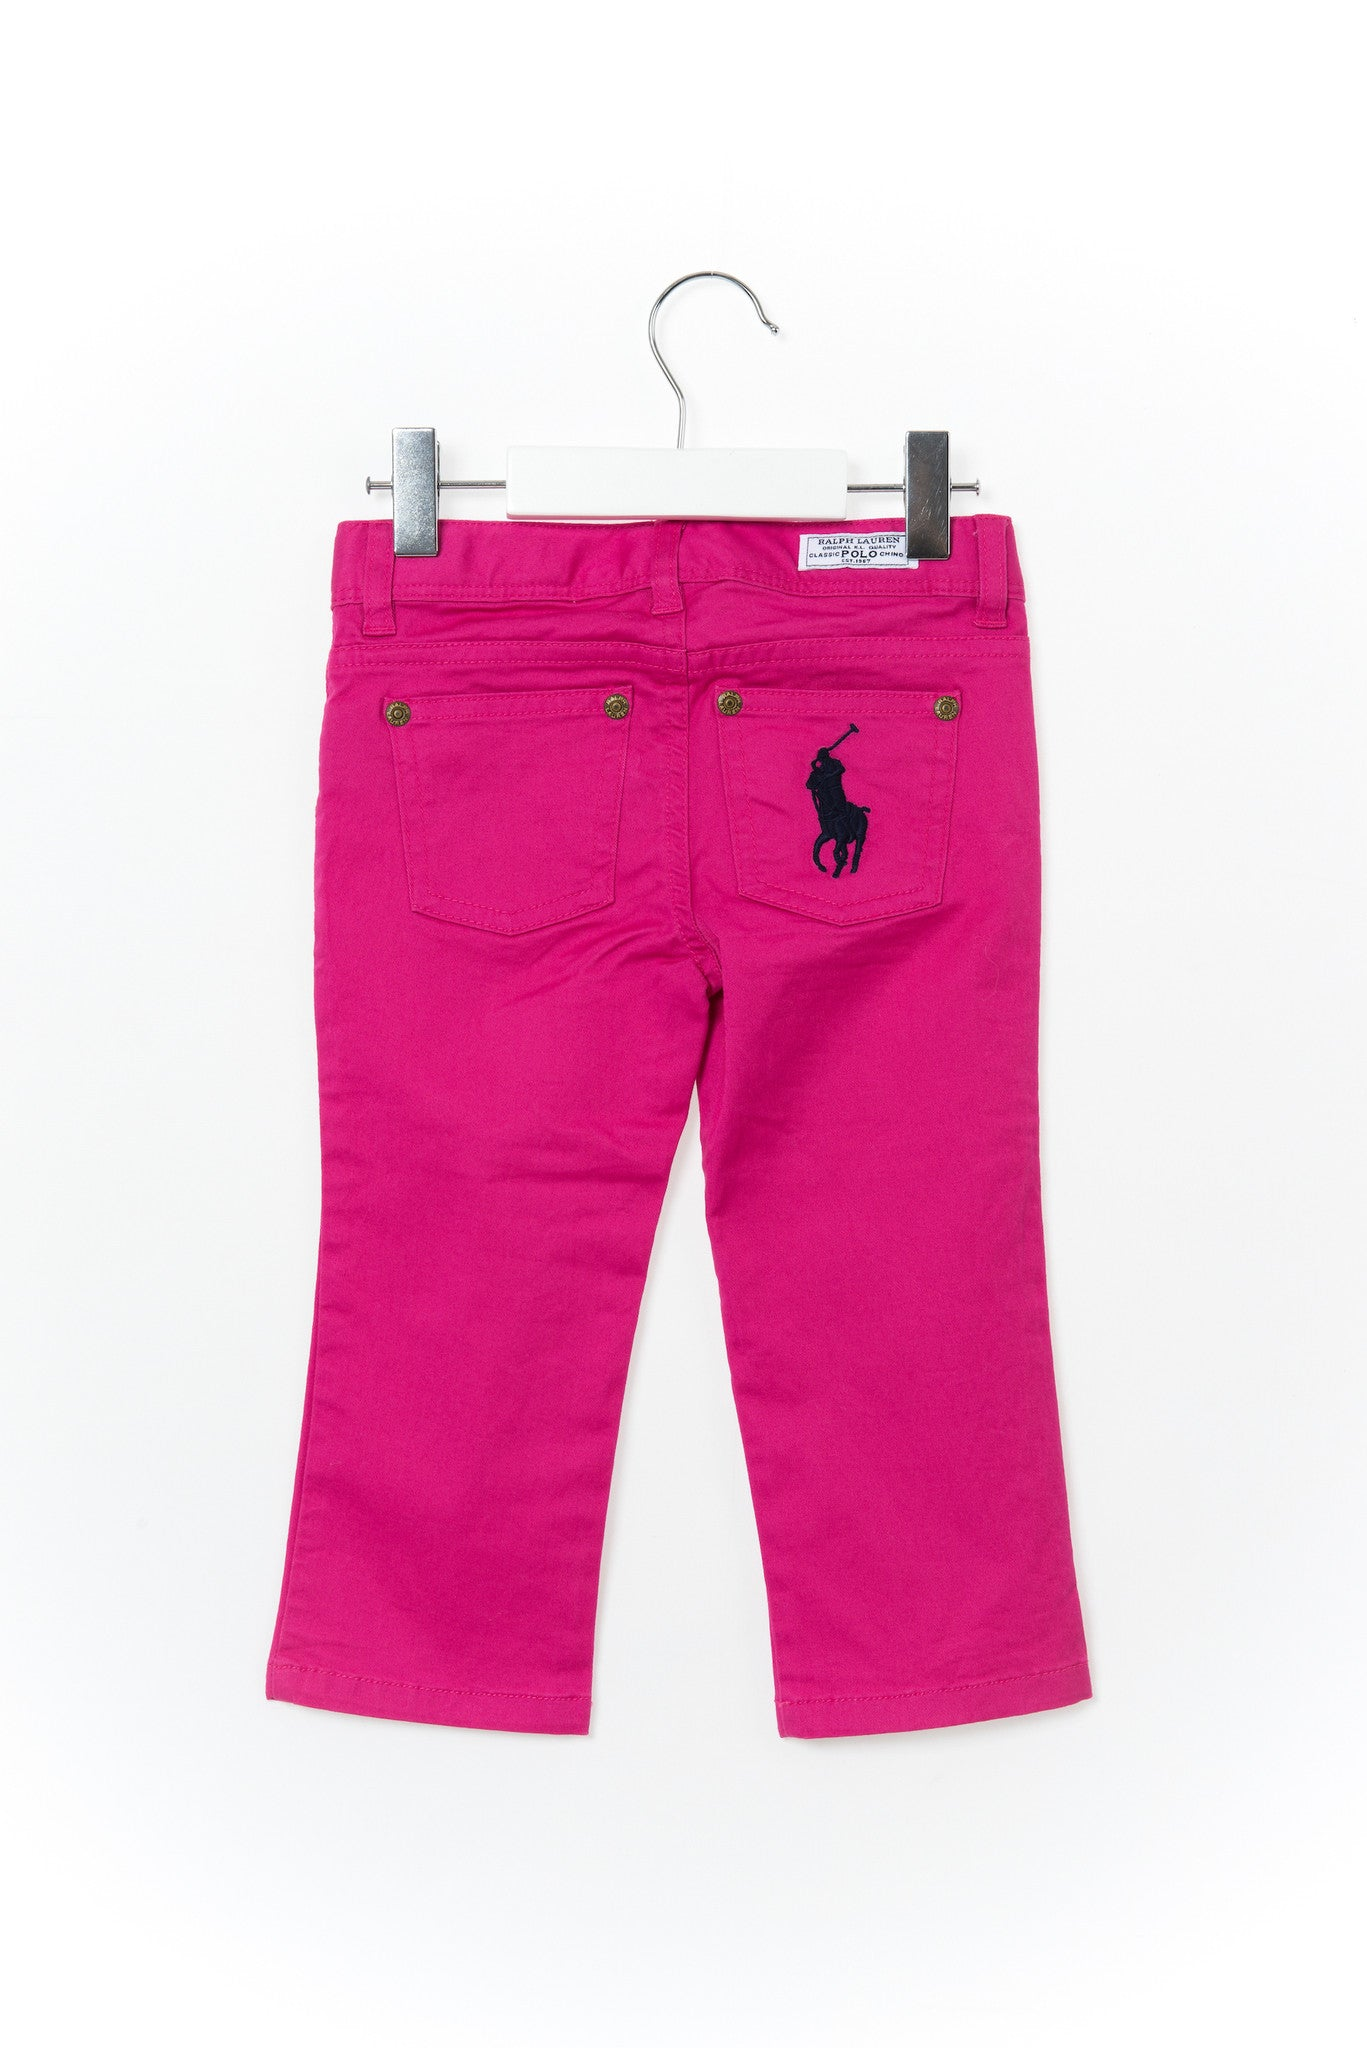 Pants 3T, Ralph Lauren at Retykle - Online Baby & Kids Clothing Up to 90% Off